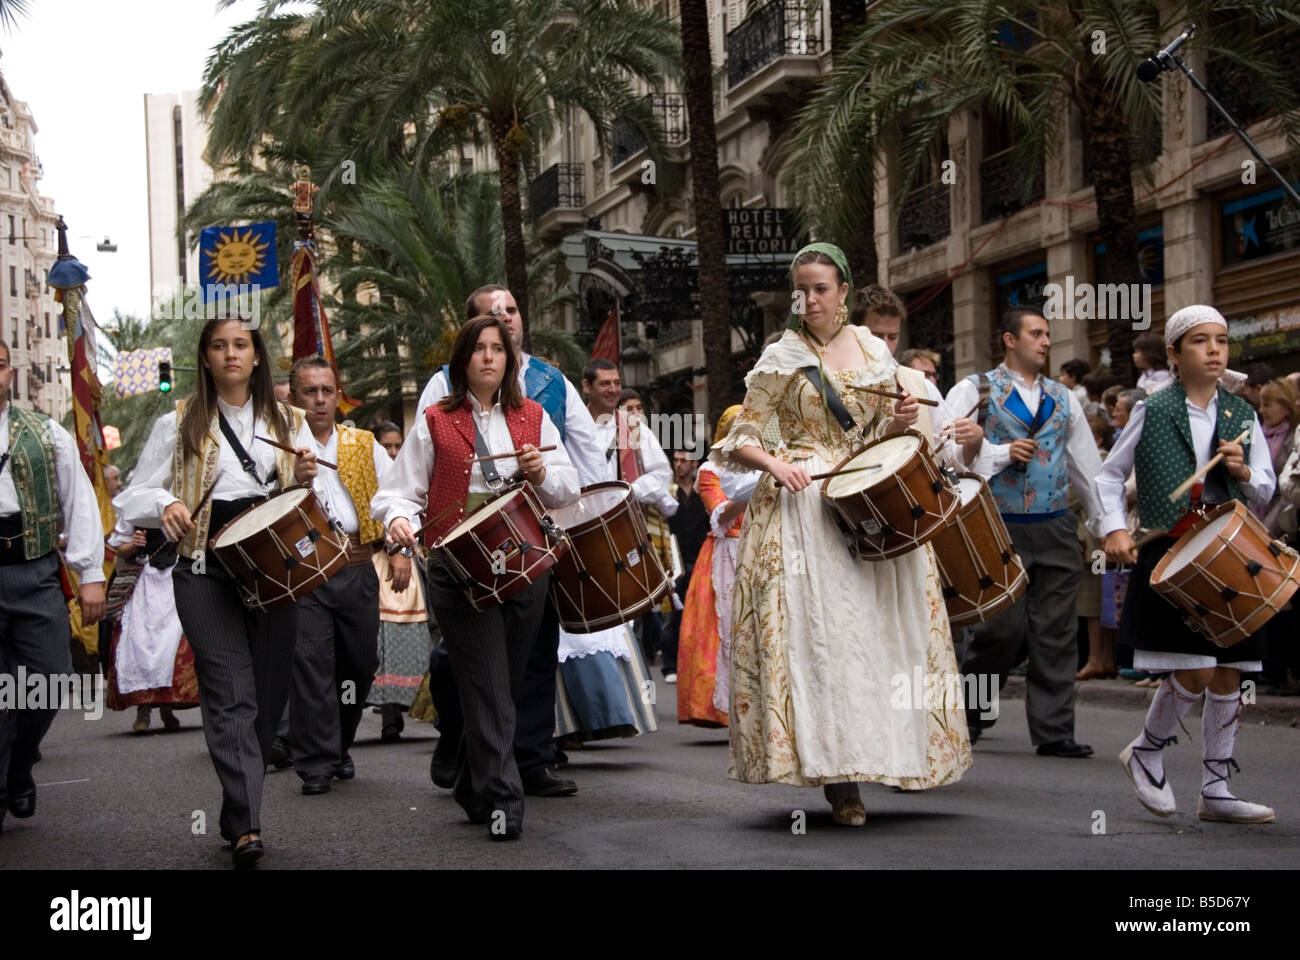 Drummers in Spanish civic parade Valencia celebrates its fiesta Nou D Octubre 9th October Valencia Spain - Stock Image